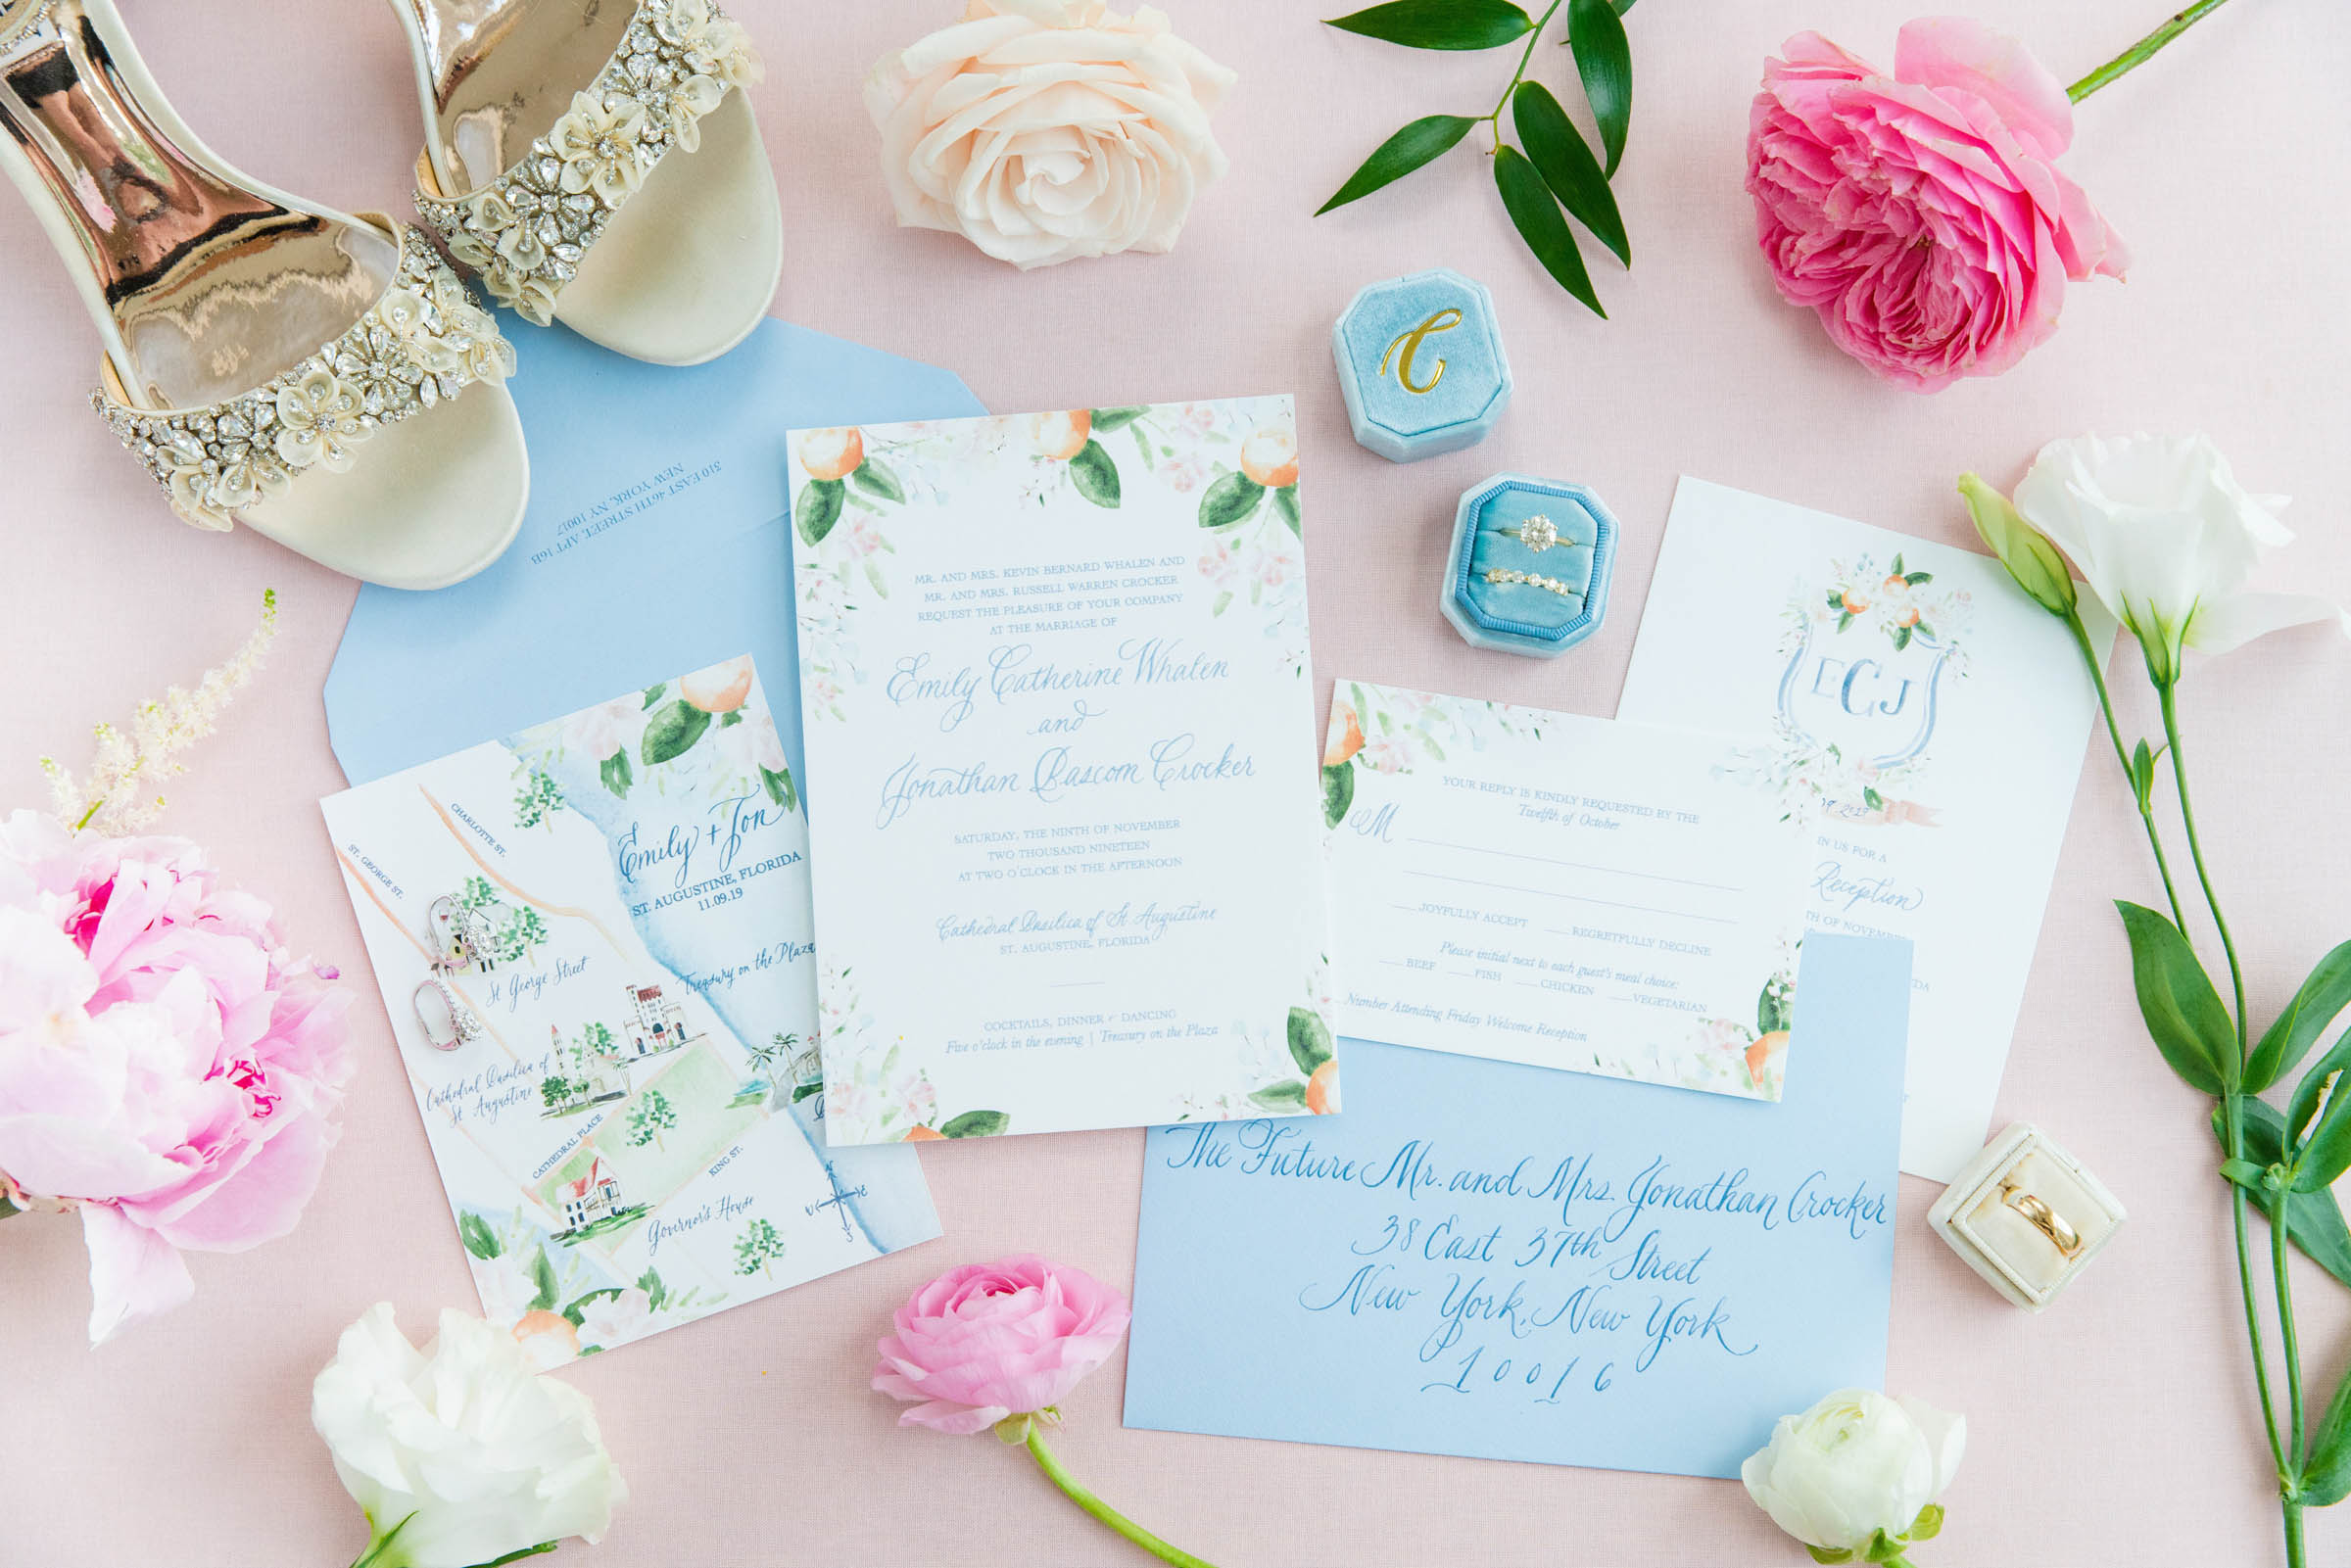 Flatlay with rings stationery and bridal shoes - photo by Dana Cubbage Weddings